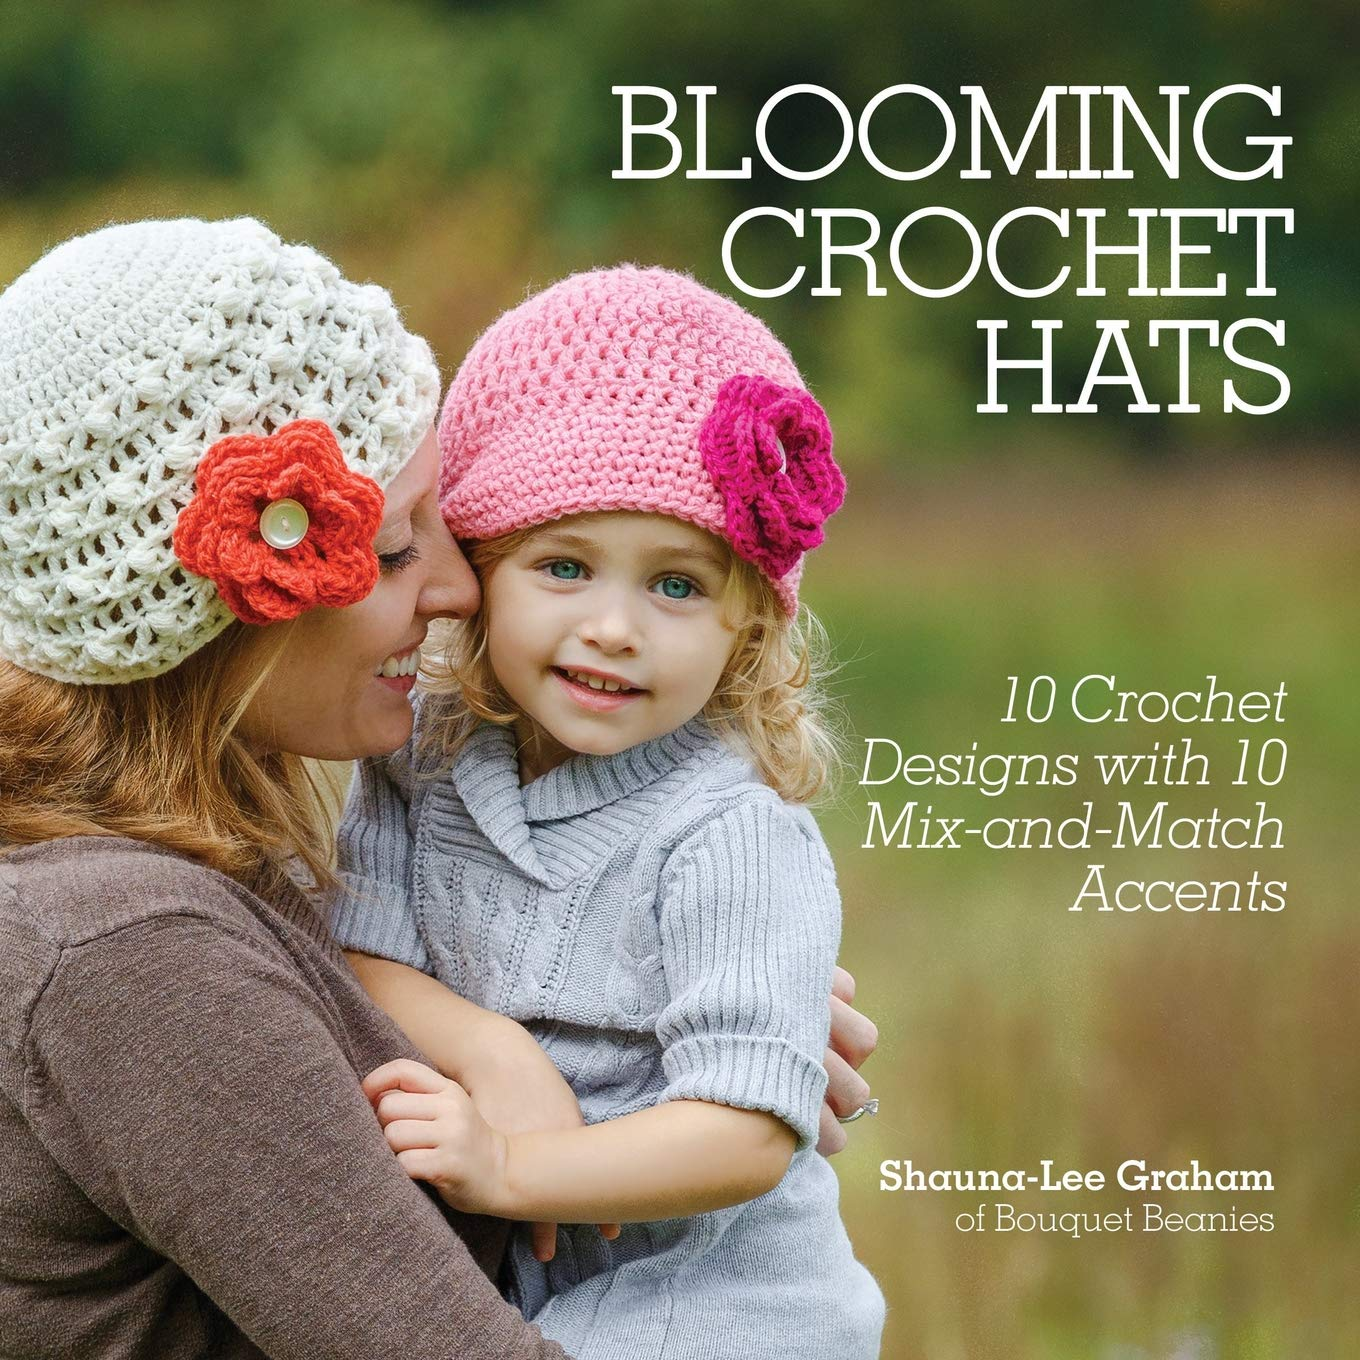 Blooming Crochet Hats 10 Crochet Designs With 10 Mix And Match